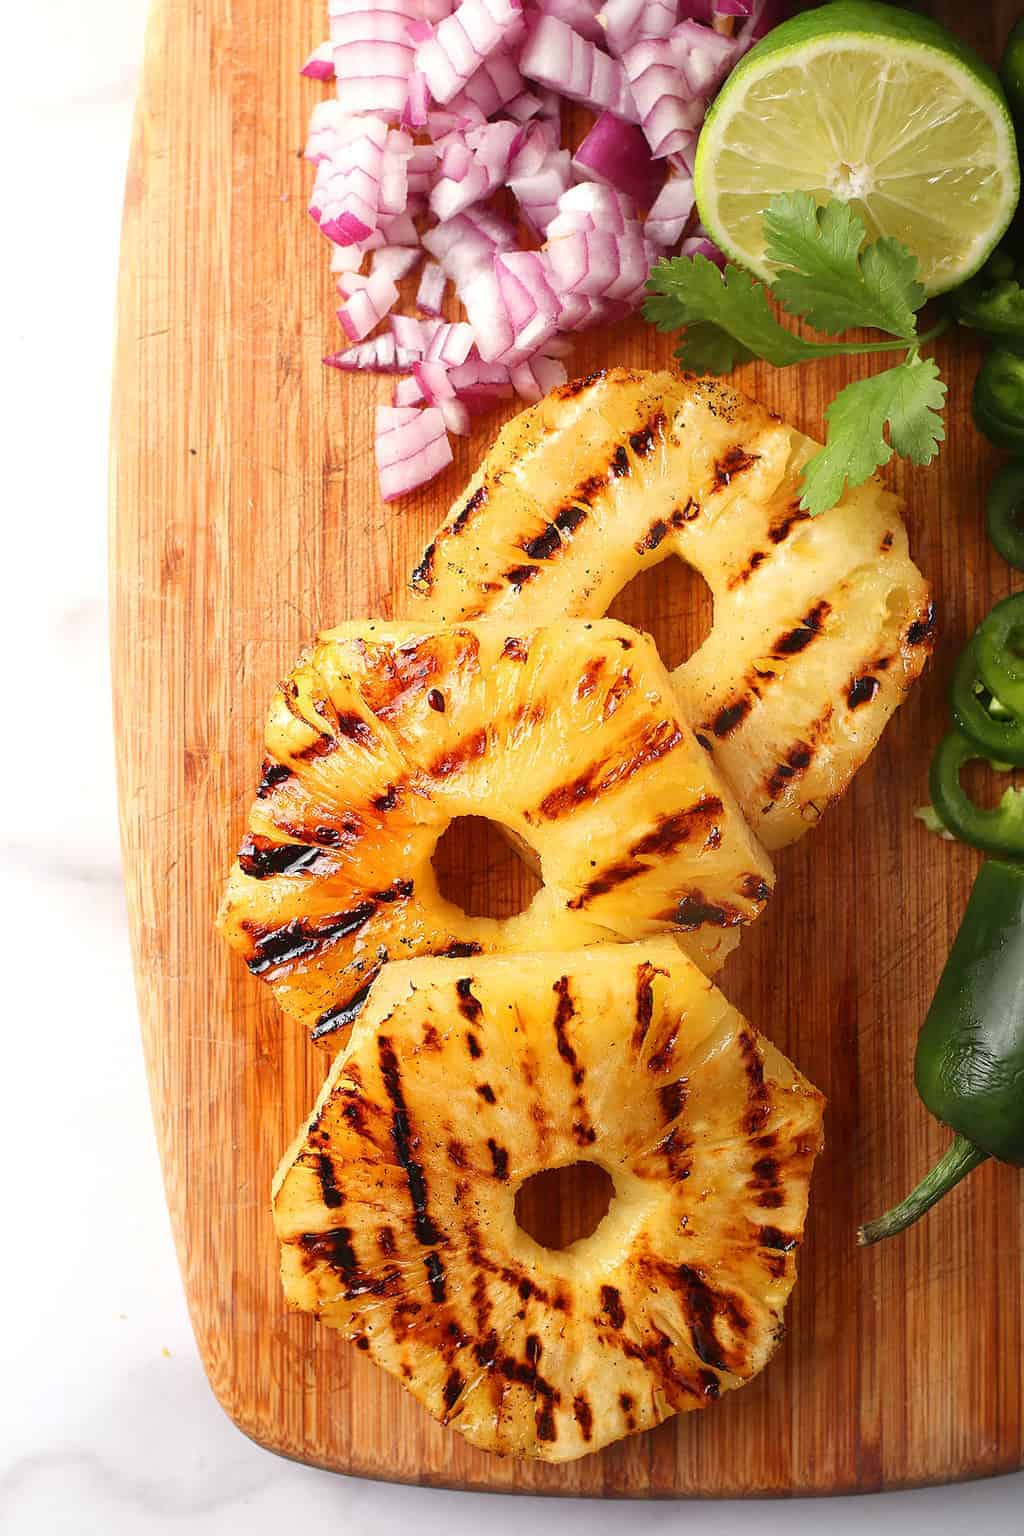 Grilled Pineapple on a cutting board